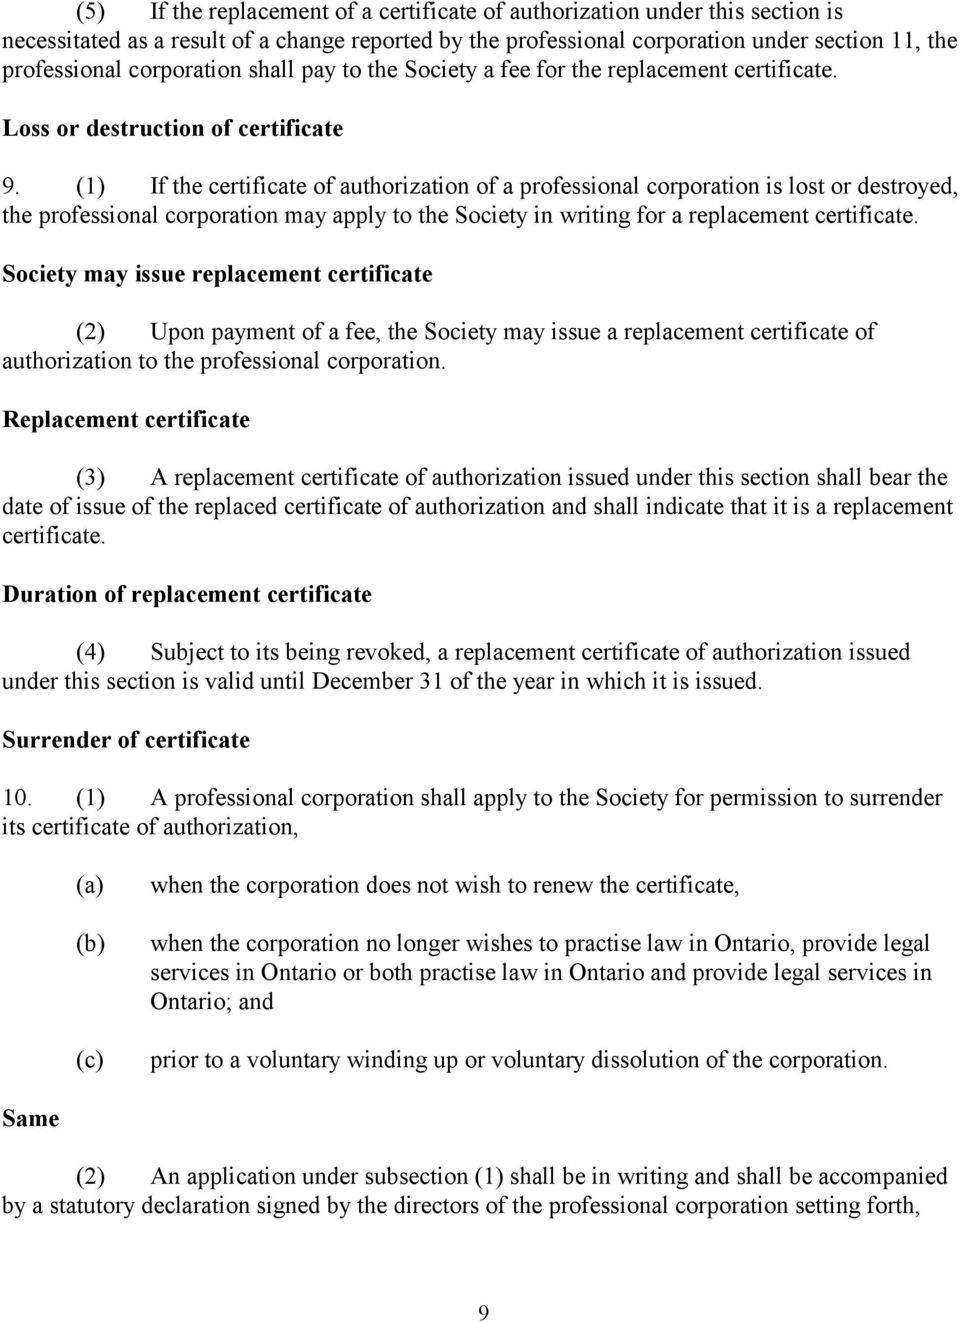 (1) If the certificate of authorization of a professional corporation is lost or destroyed, the professional corporation may apply to the Society in writing for a replacement certificate.